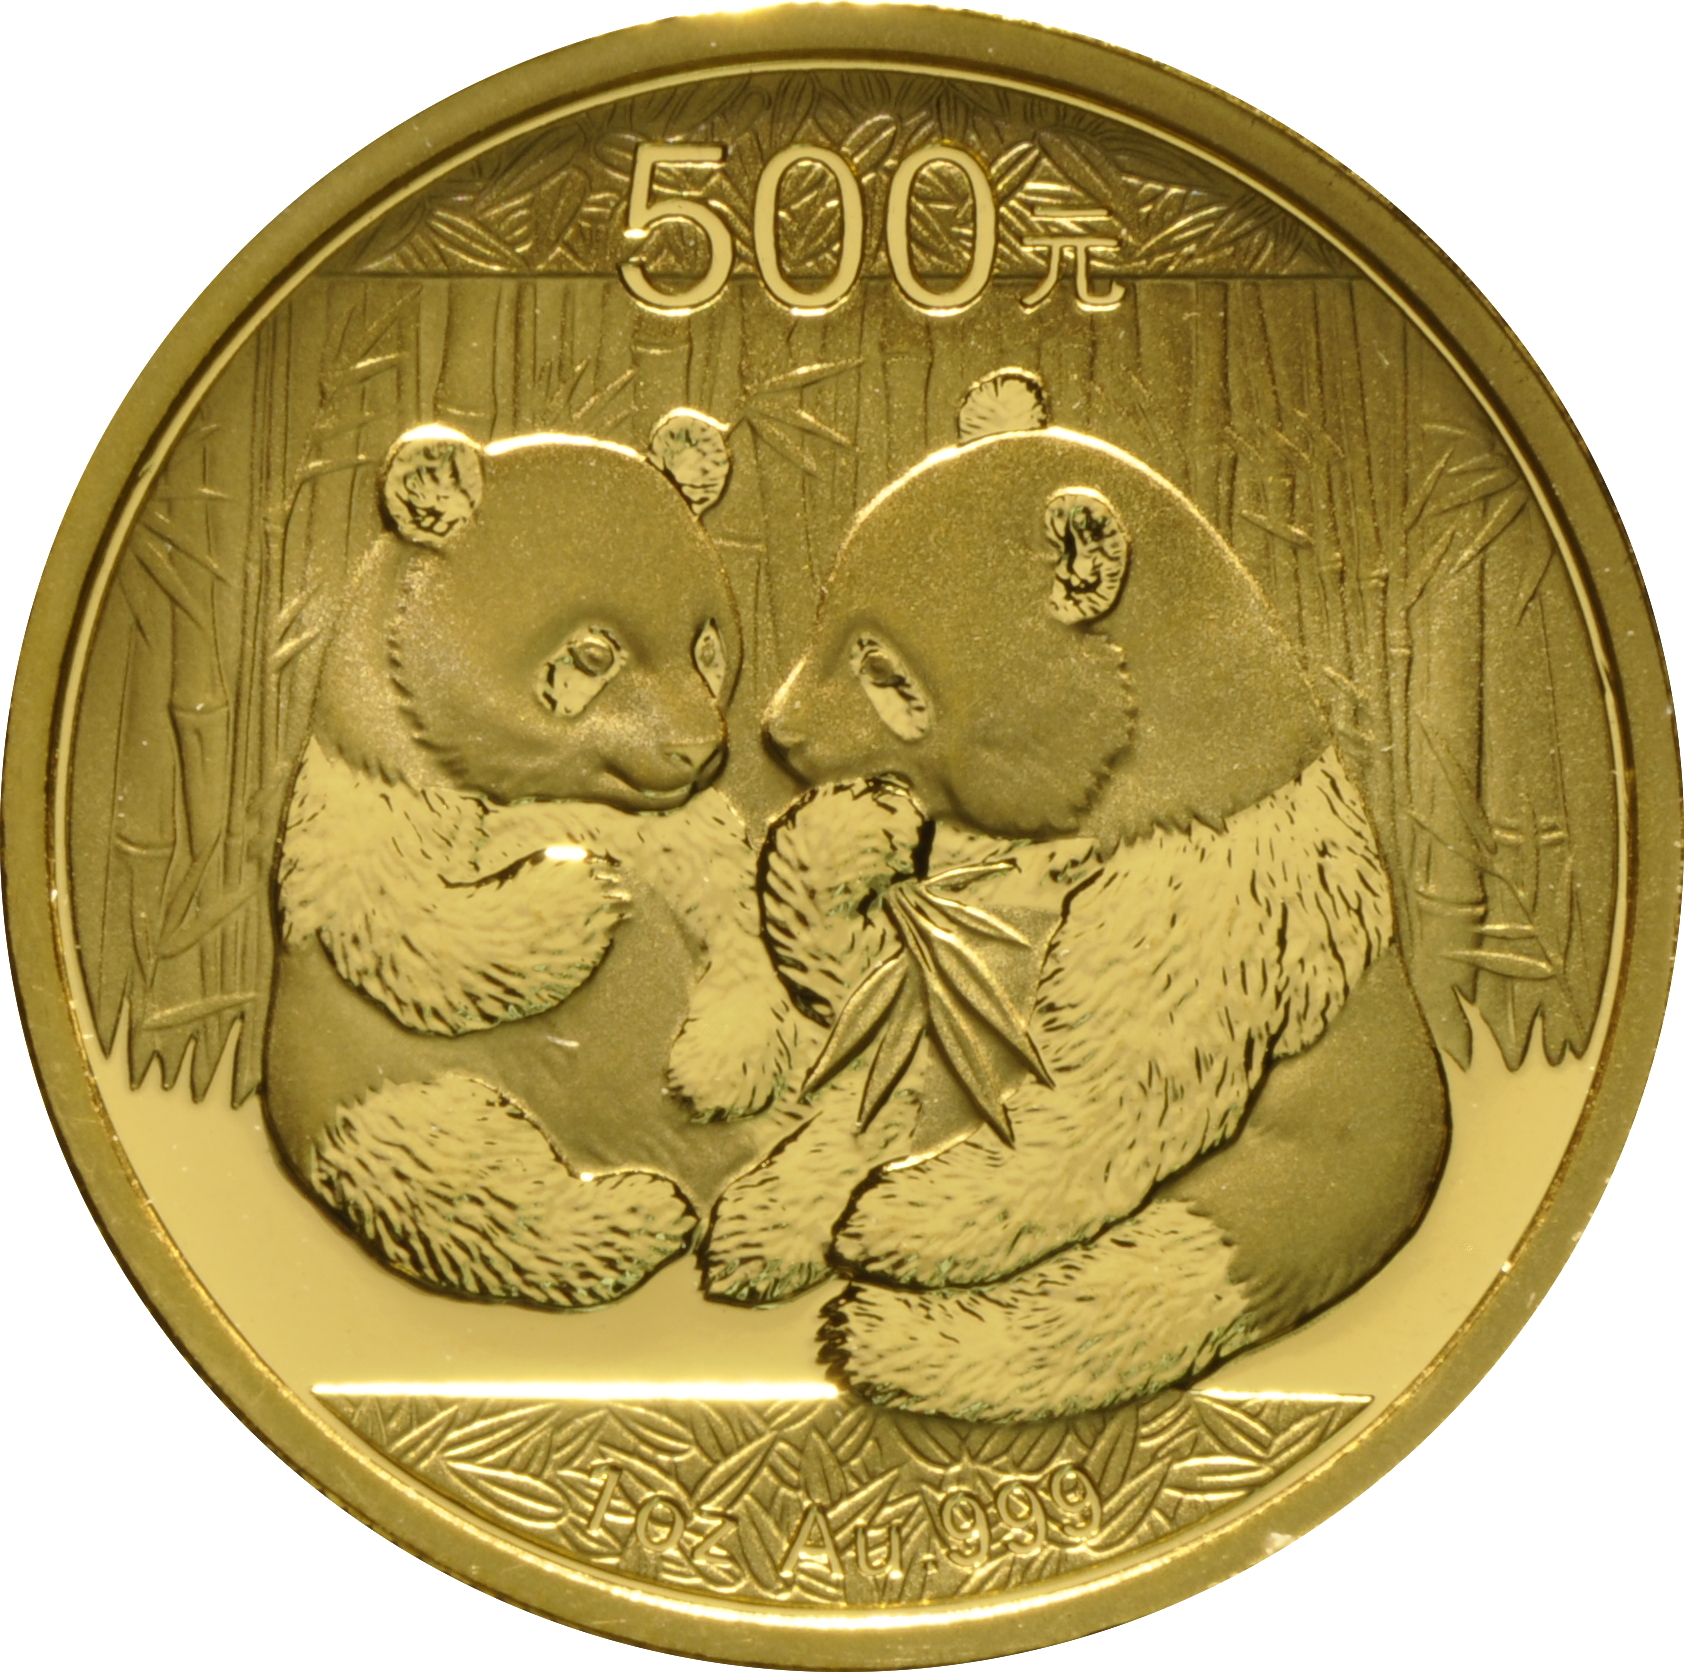 2009 1oz Gold Chinese Panda Coin 163 1 072